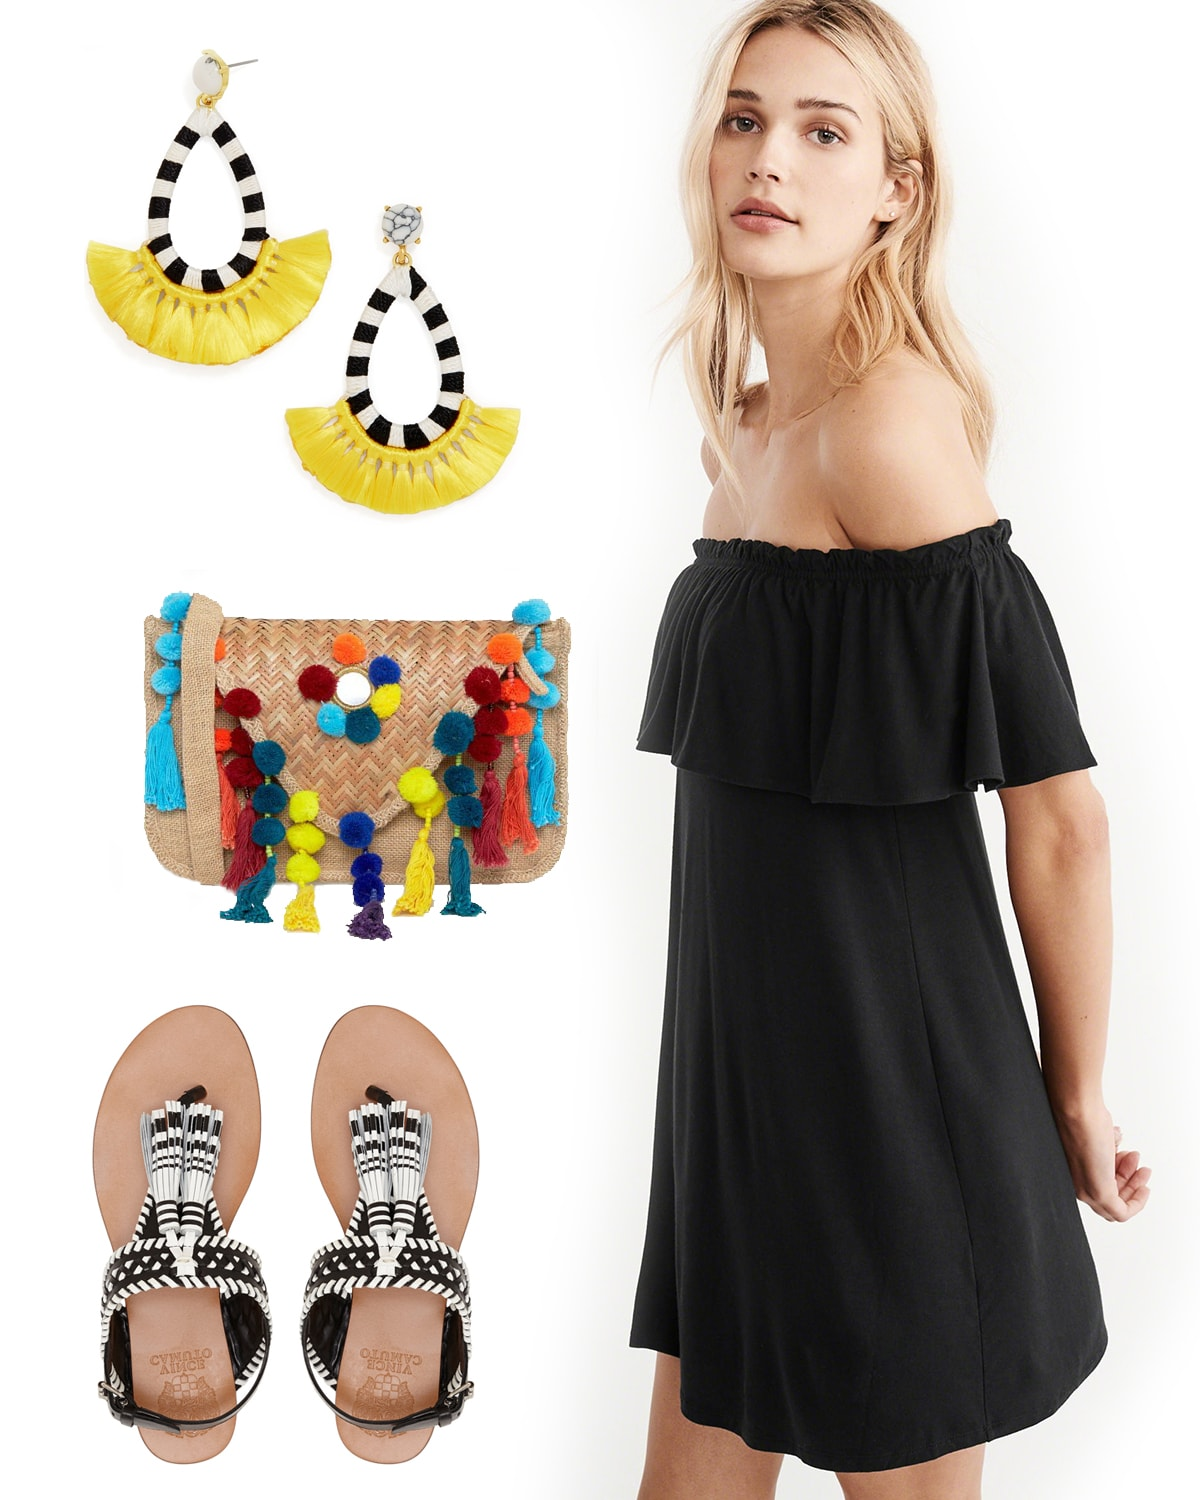 summer outfit with black off the shoulder dress and black and white earrings, sandals and pompom purse